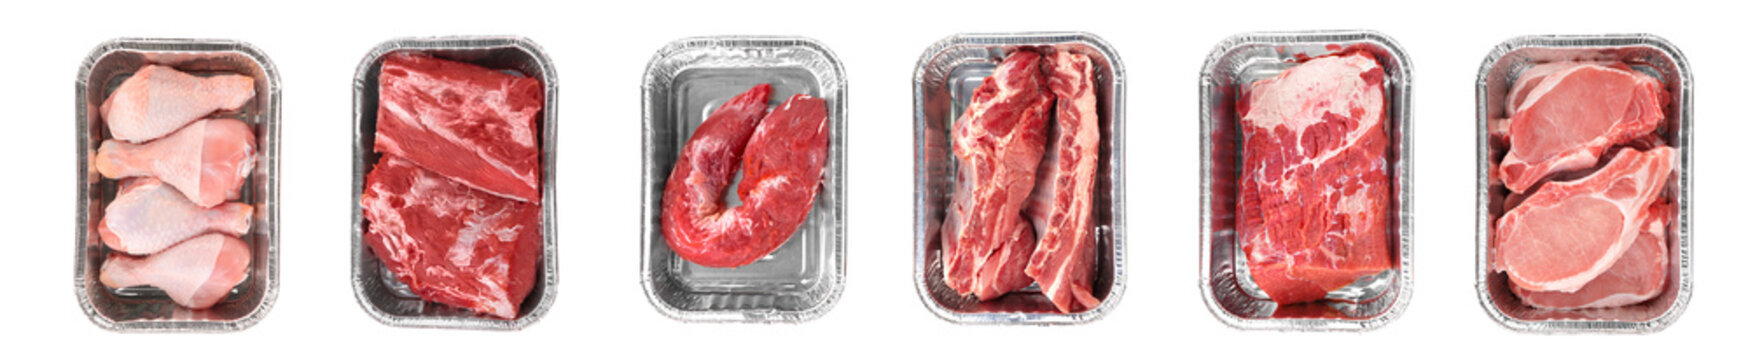 Collage of fresh meat on white background